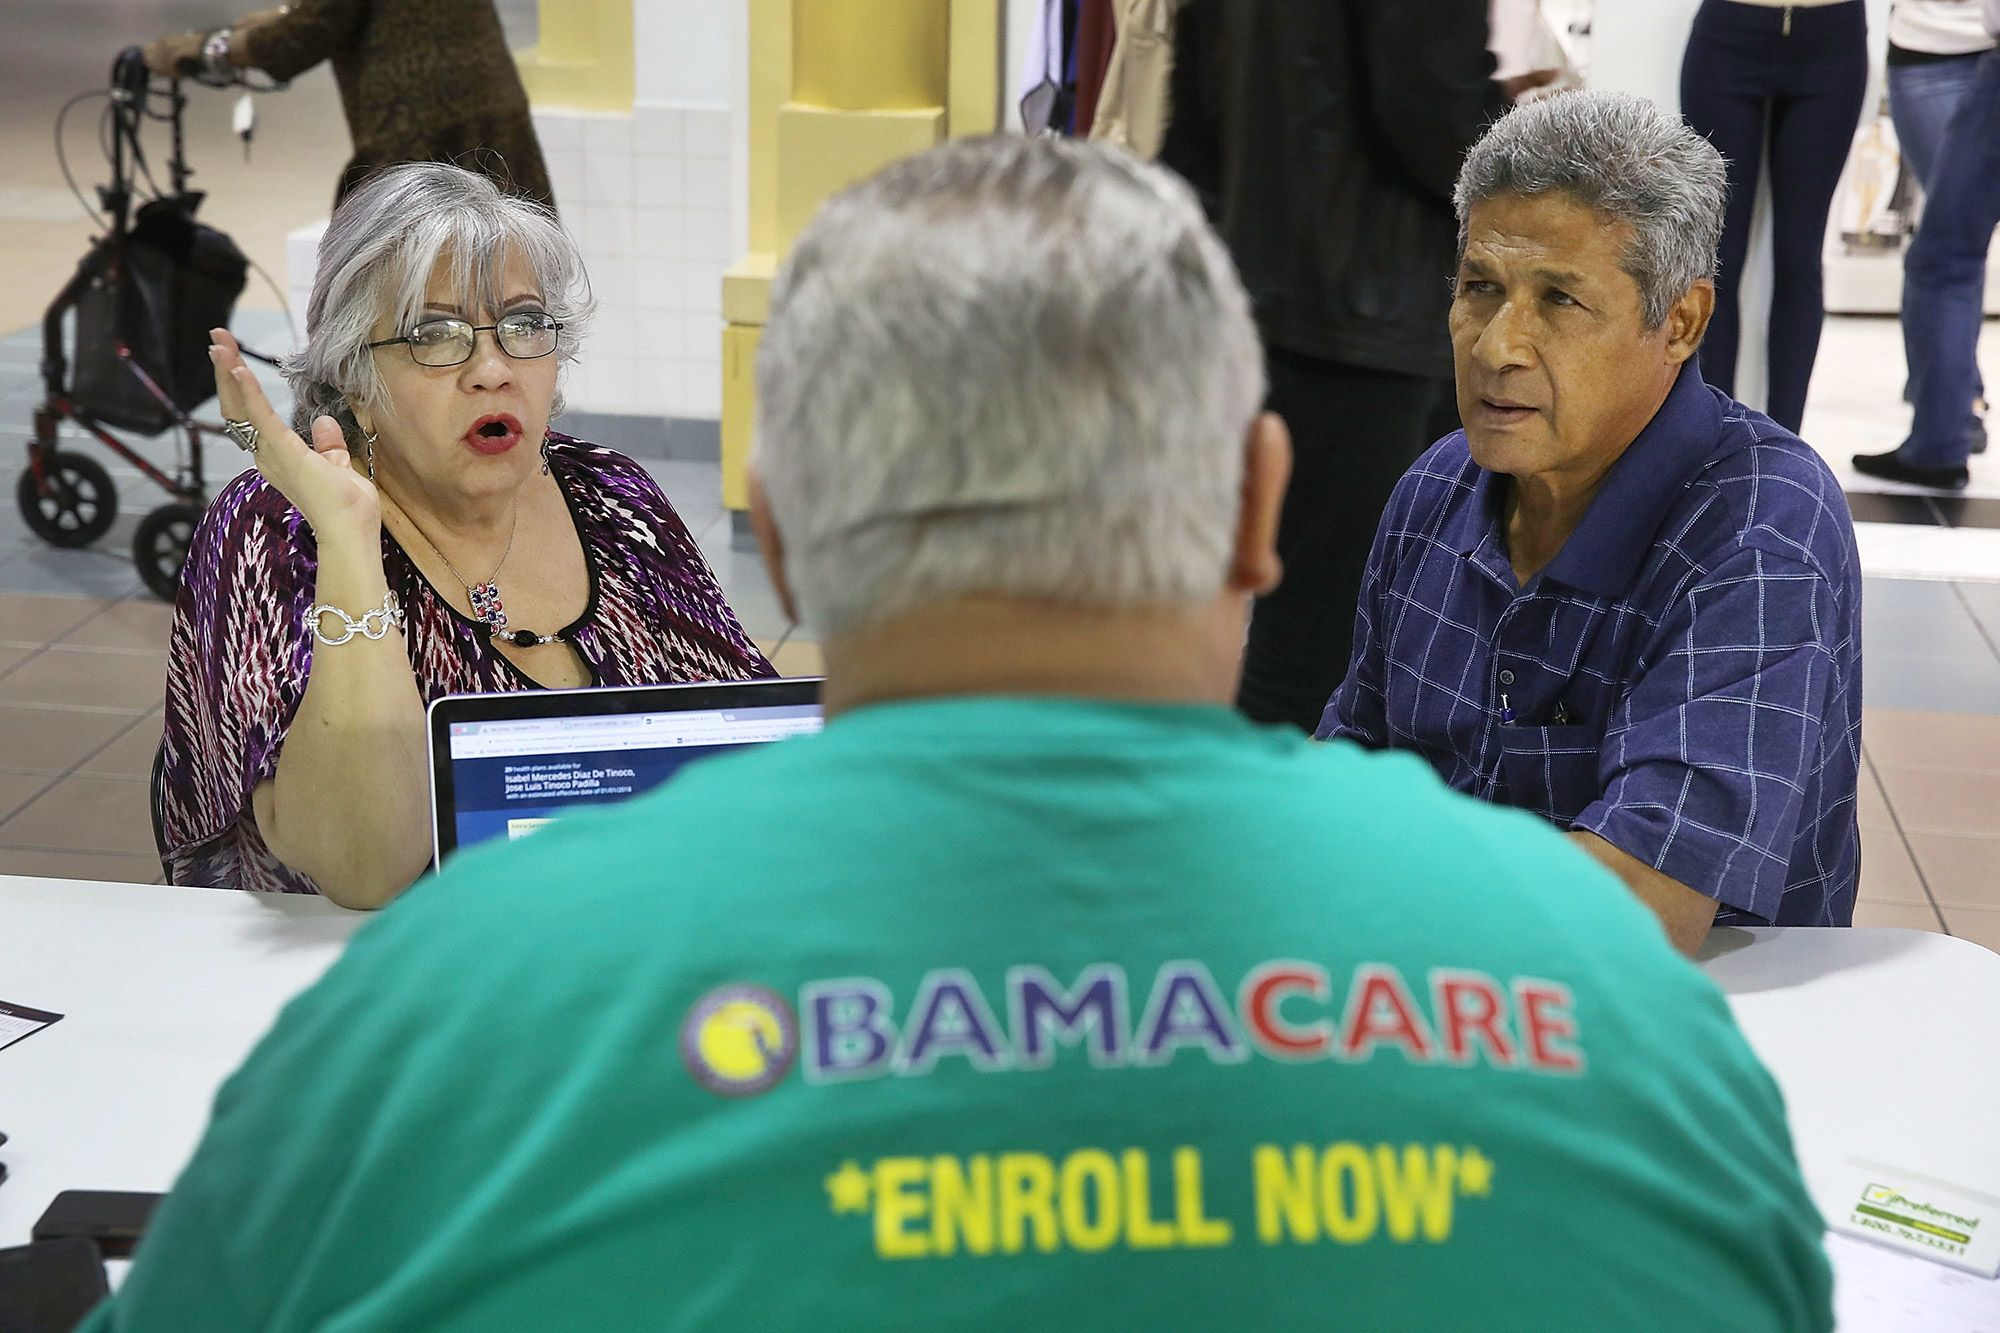 Here's who will lose their insurance if Obamacare is overturned